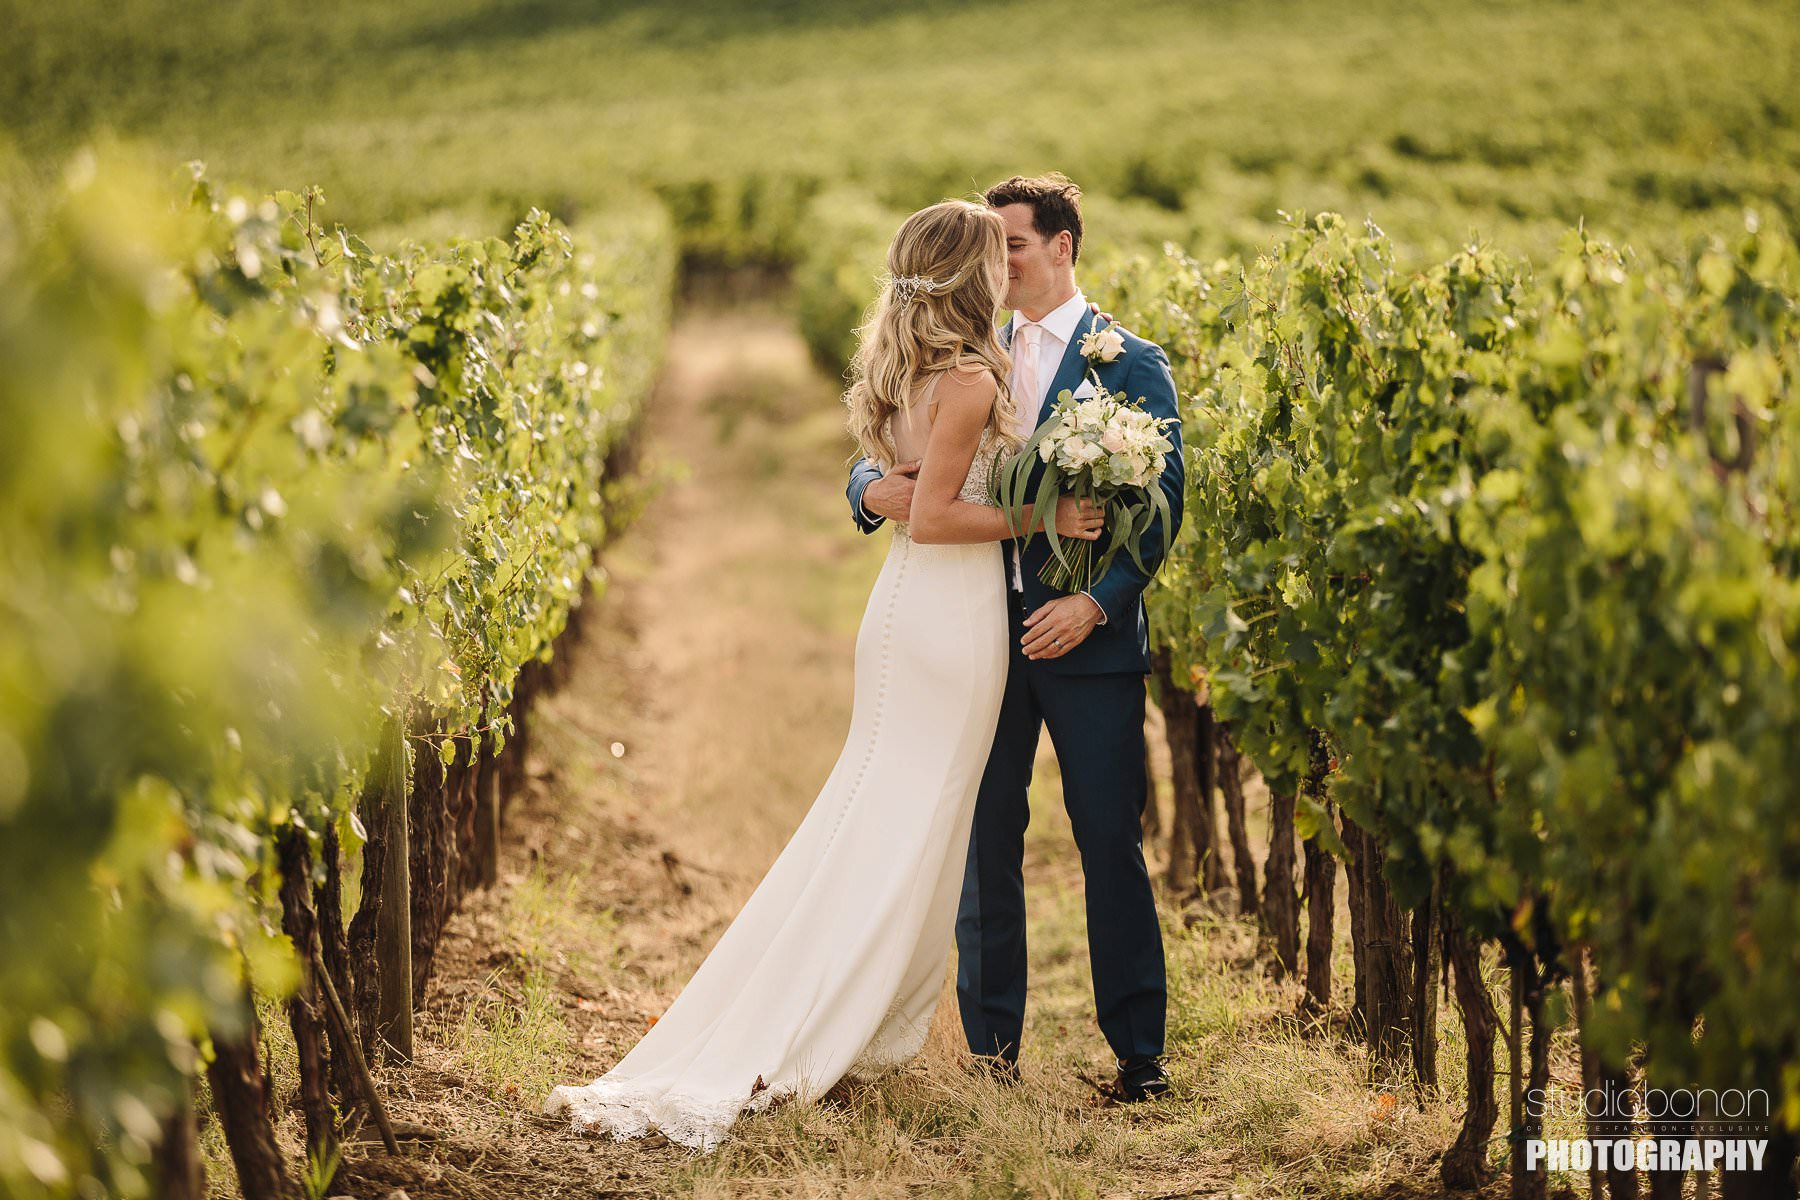 Bride and groom wedding photo into the vineyard. Tuscany countryside destination wedding